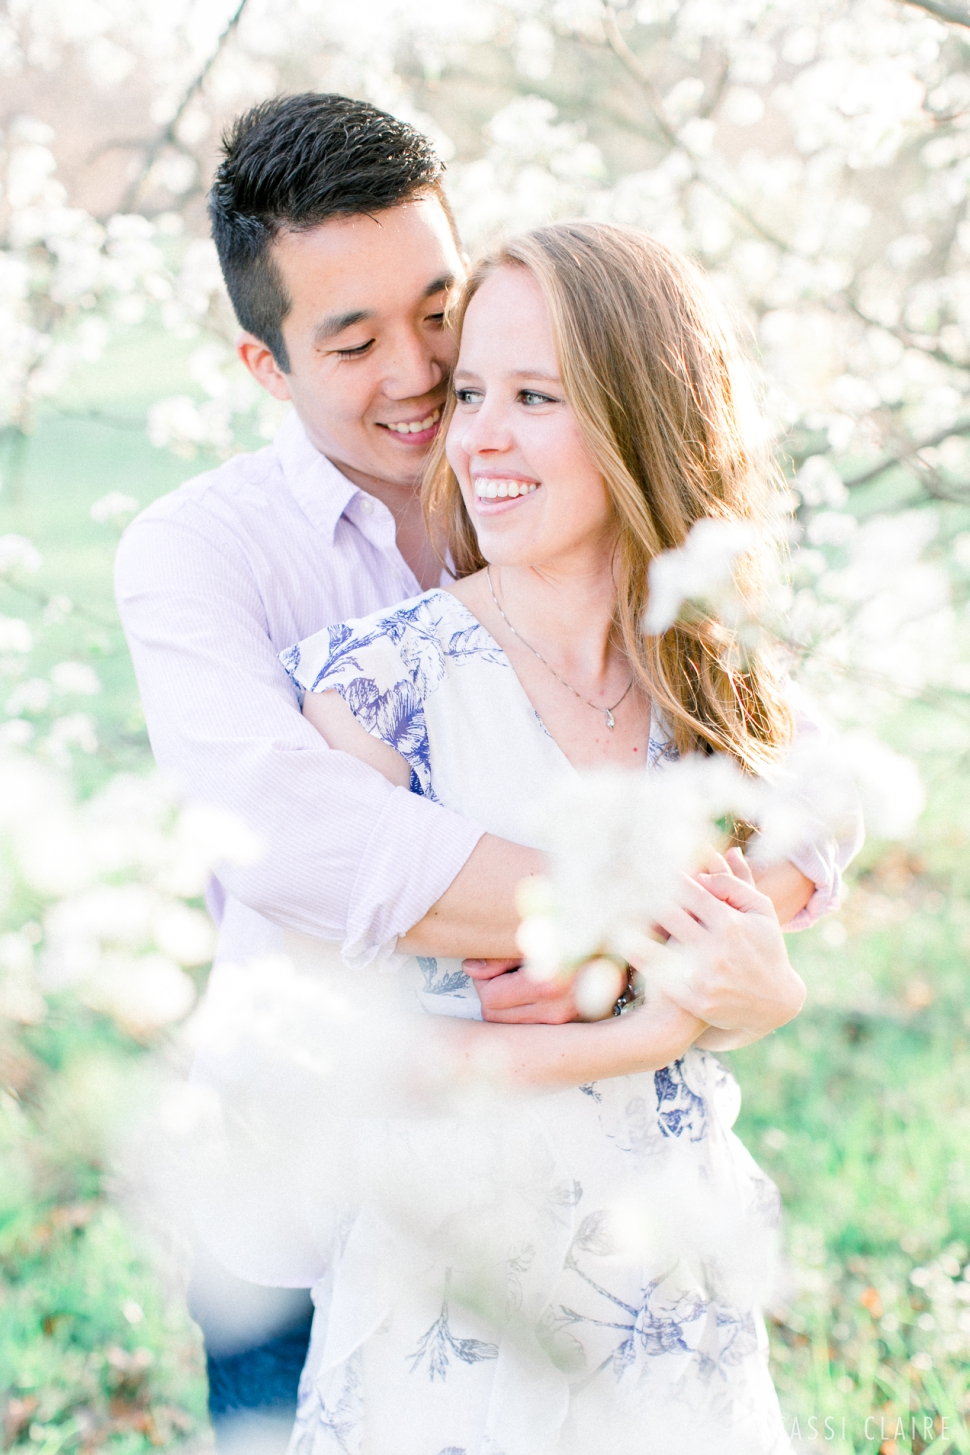 Willowwood-Arboretum-Engagement-Photos_17.jpg